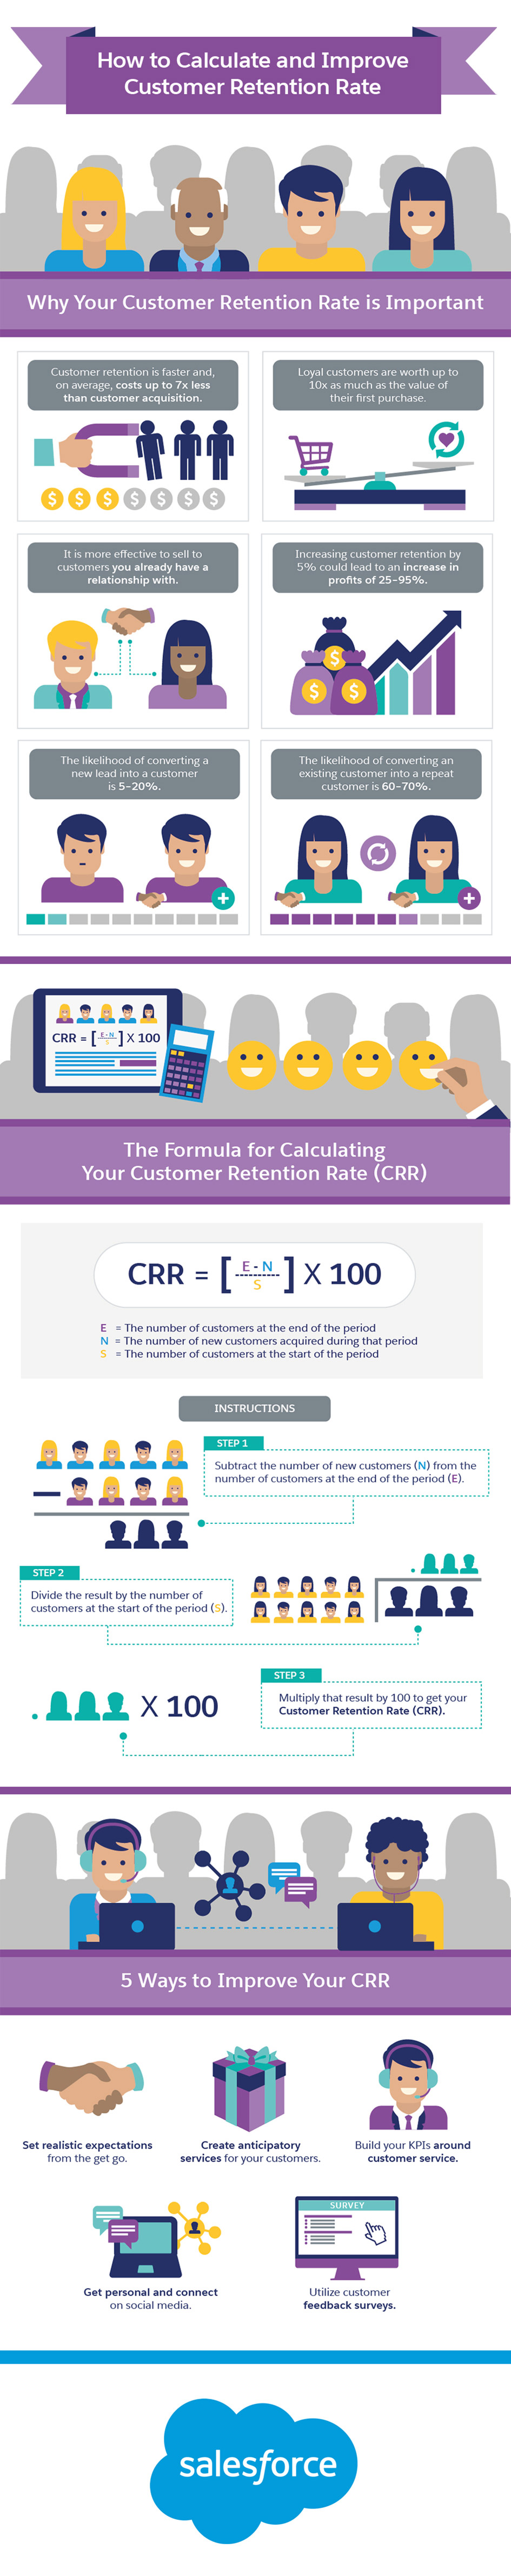 How to Calculate and Improve Customer Retention Rate Infographic